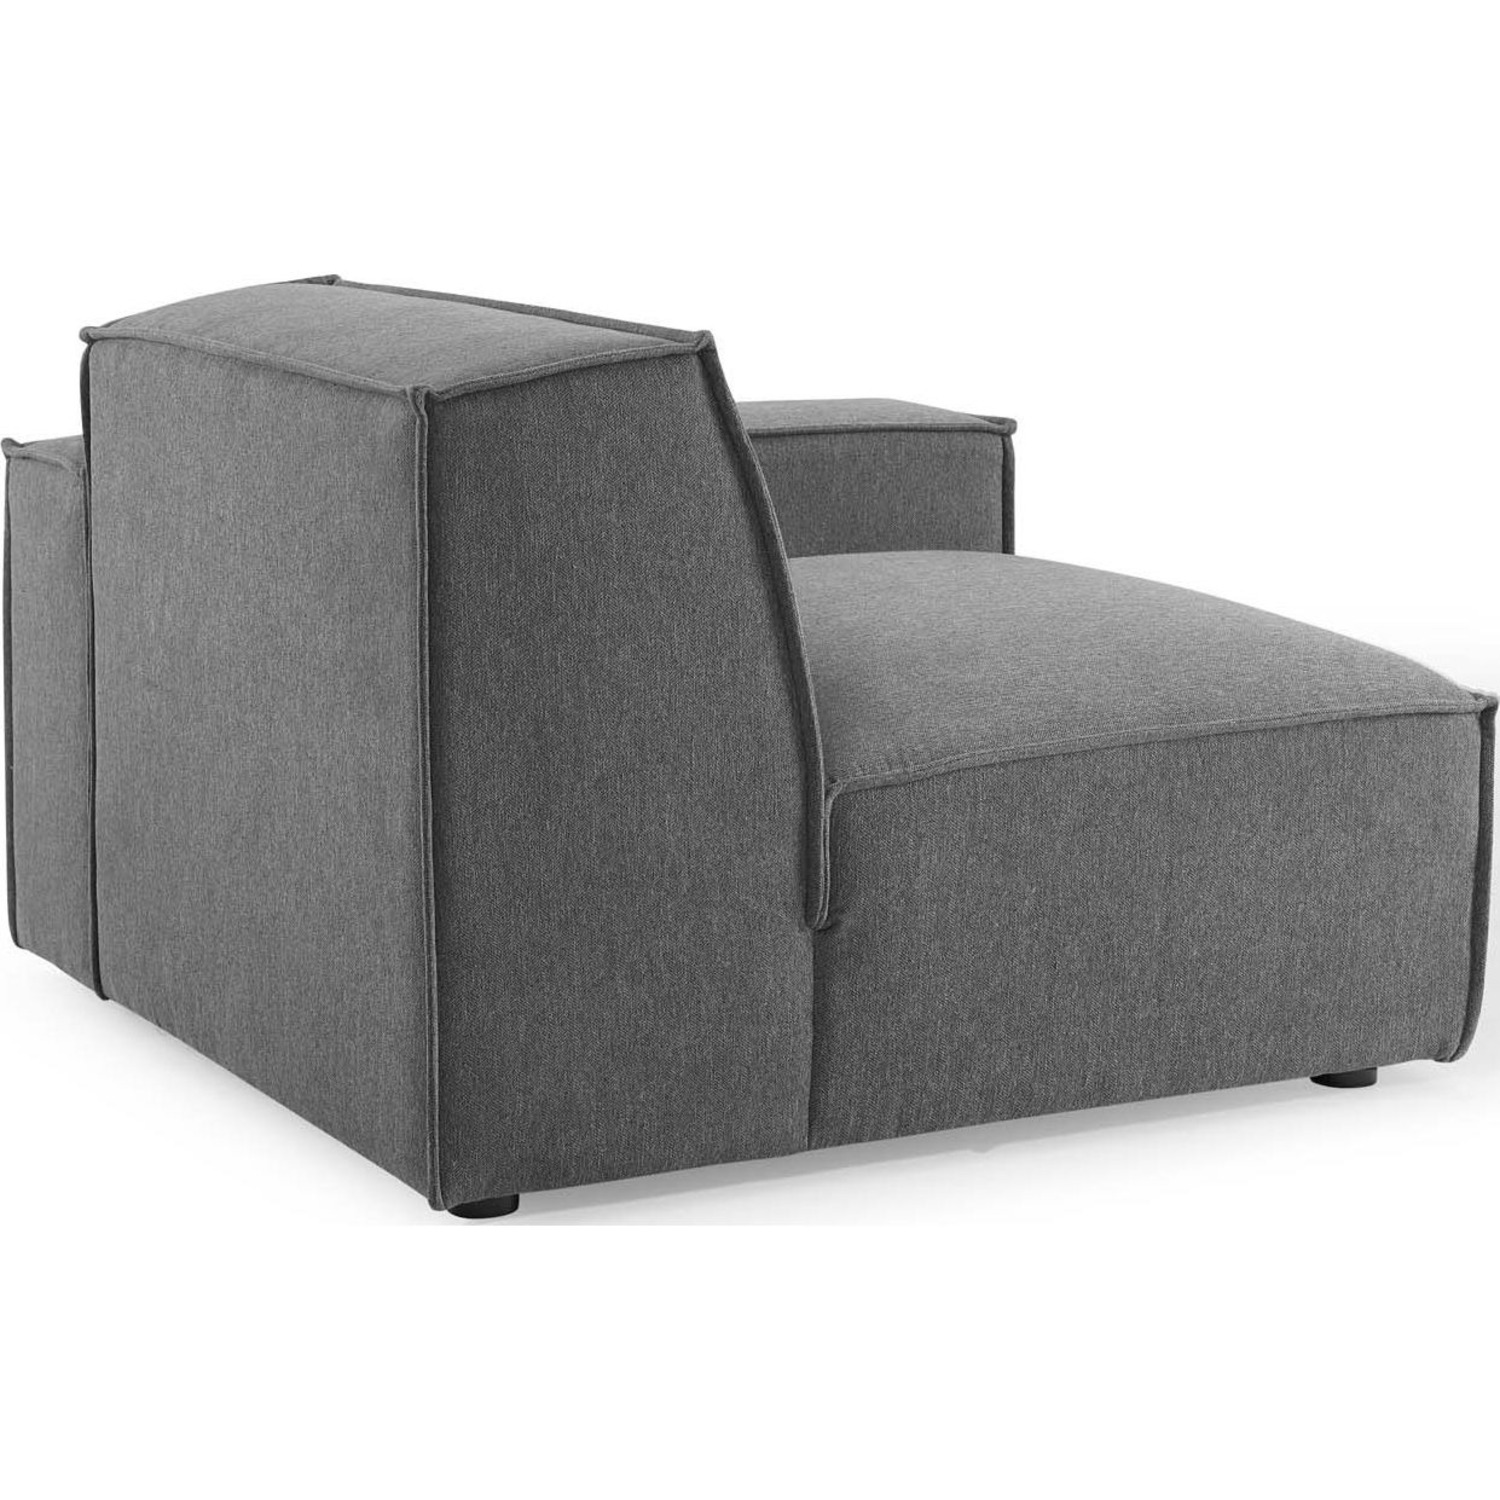 4-Piece Sectional Sofa In Charcoal Foam Padding - image-4